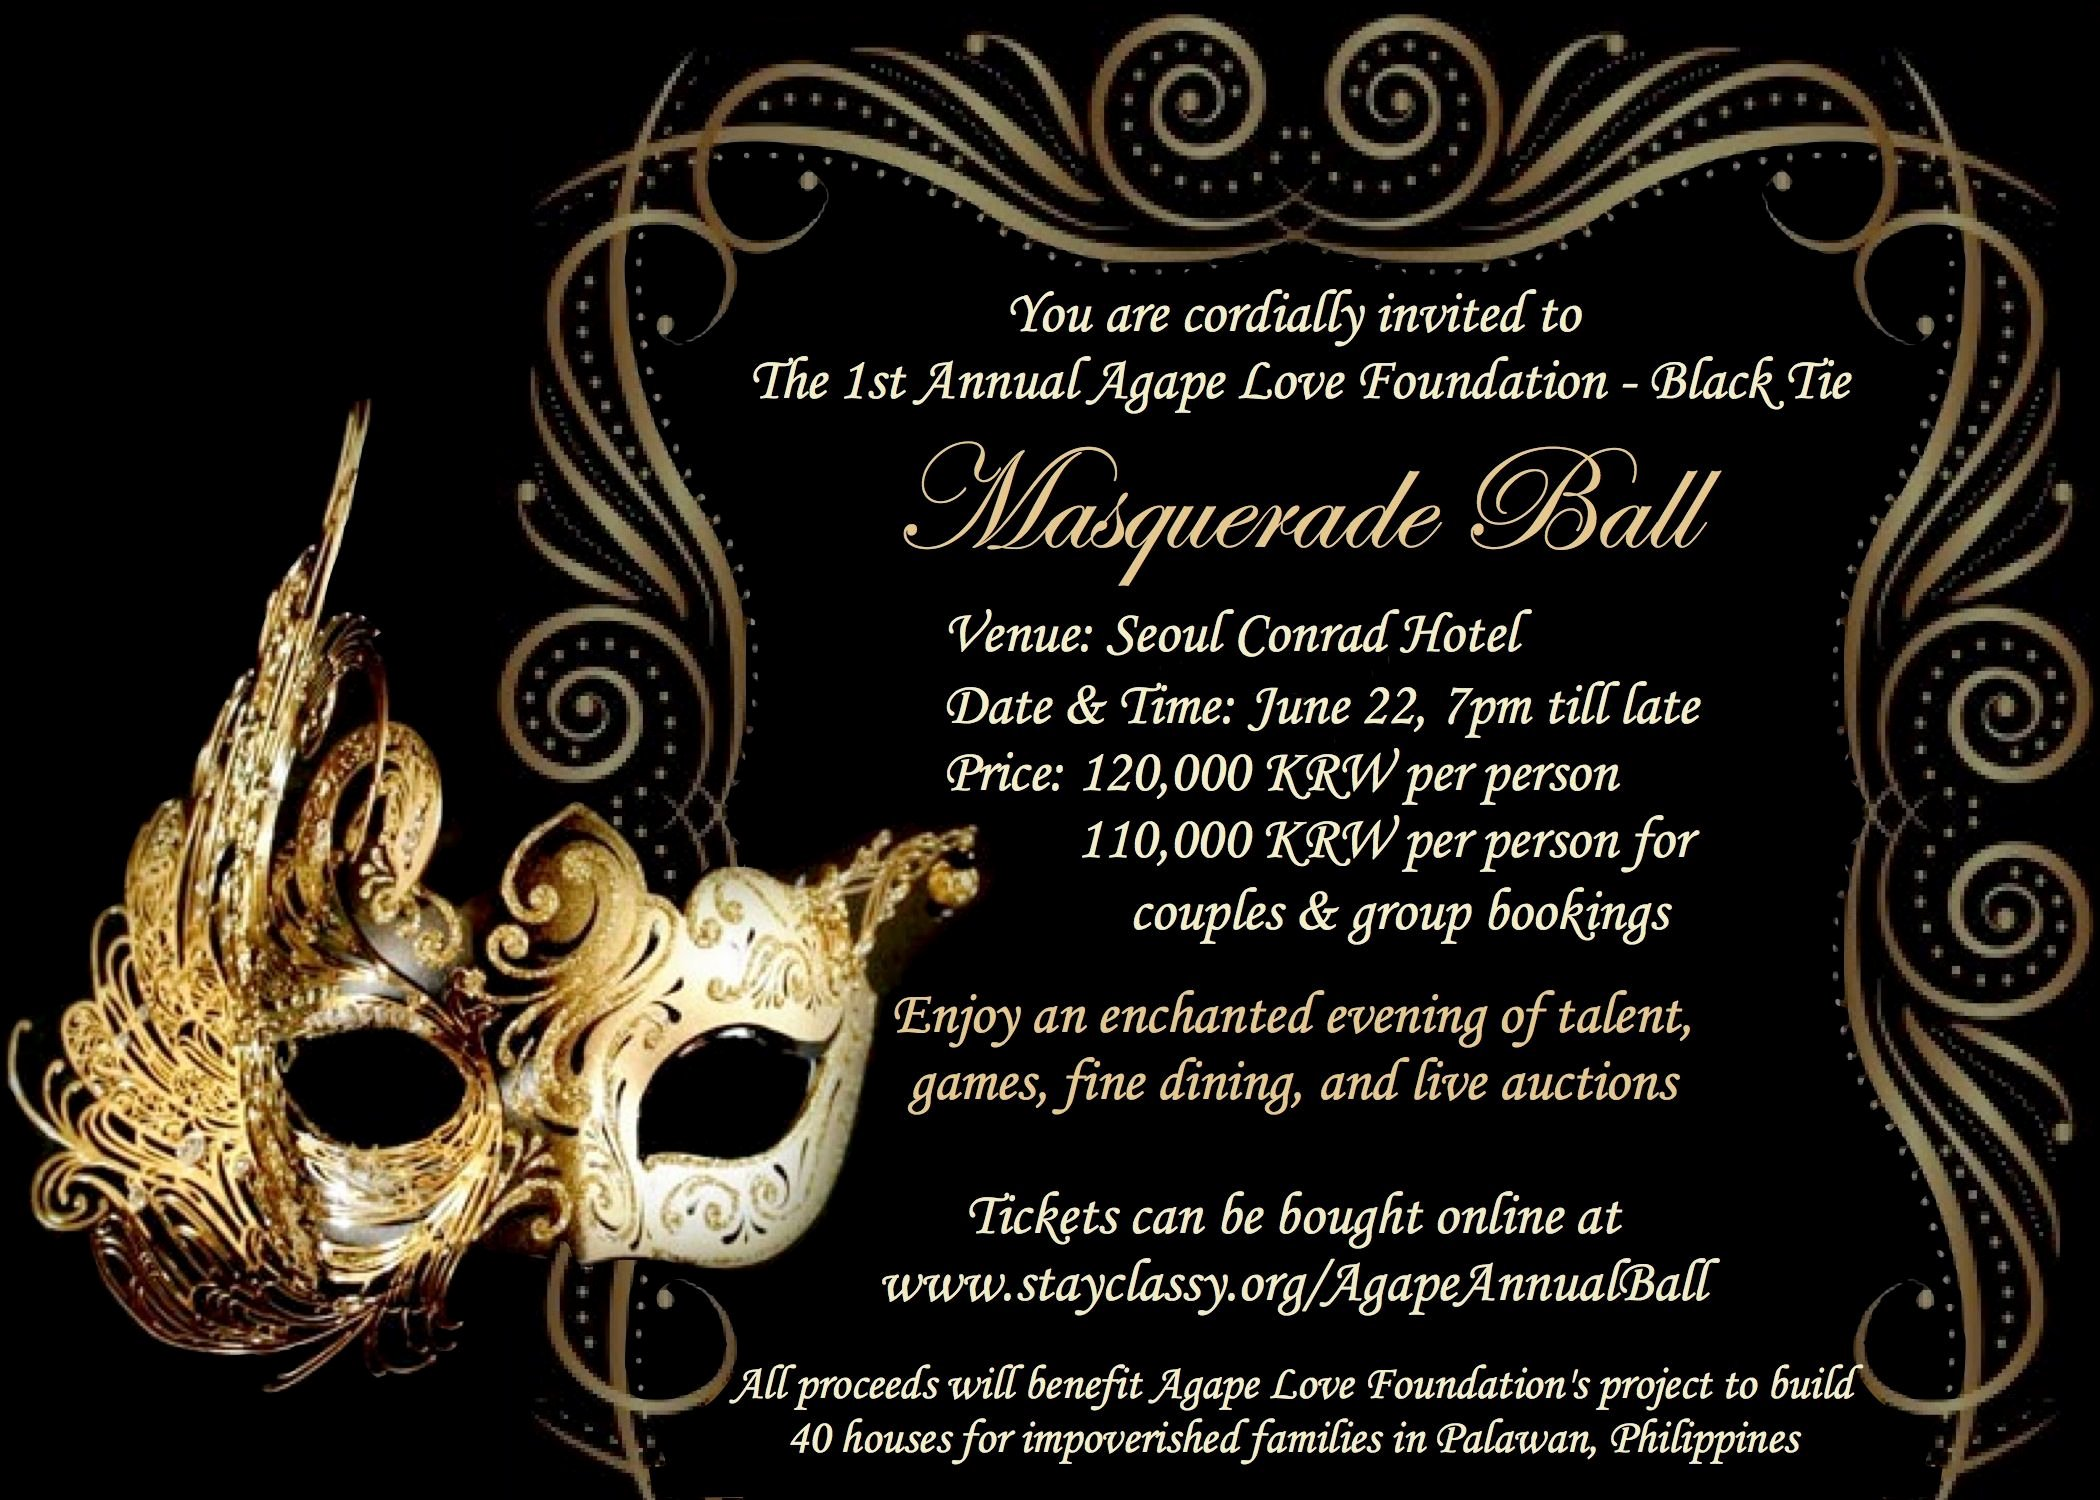 Masquerade Ball Invite Wording Luxury Invite Masquerade Ball Pinterest